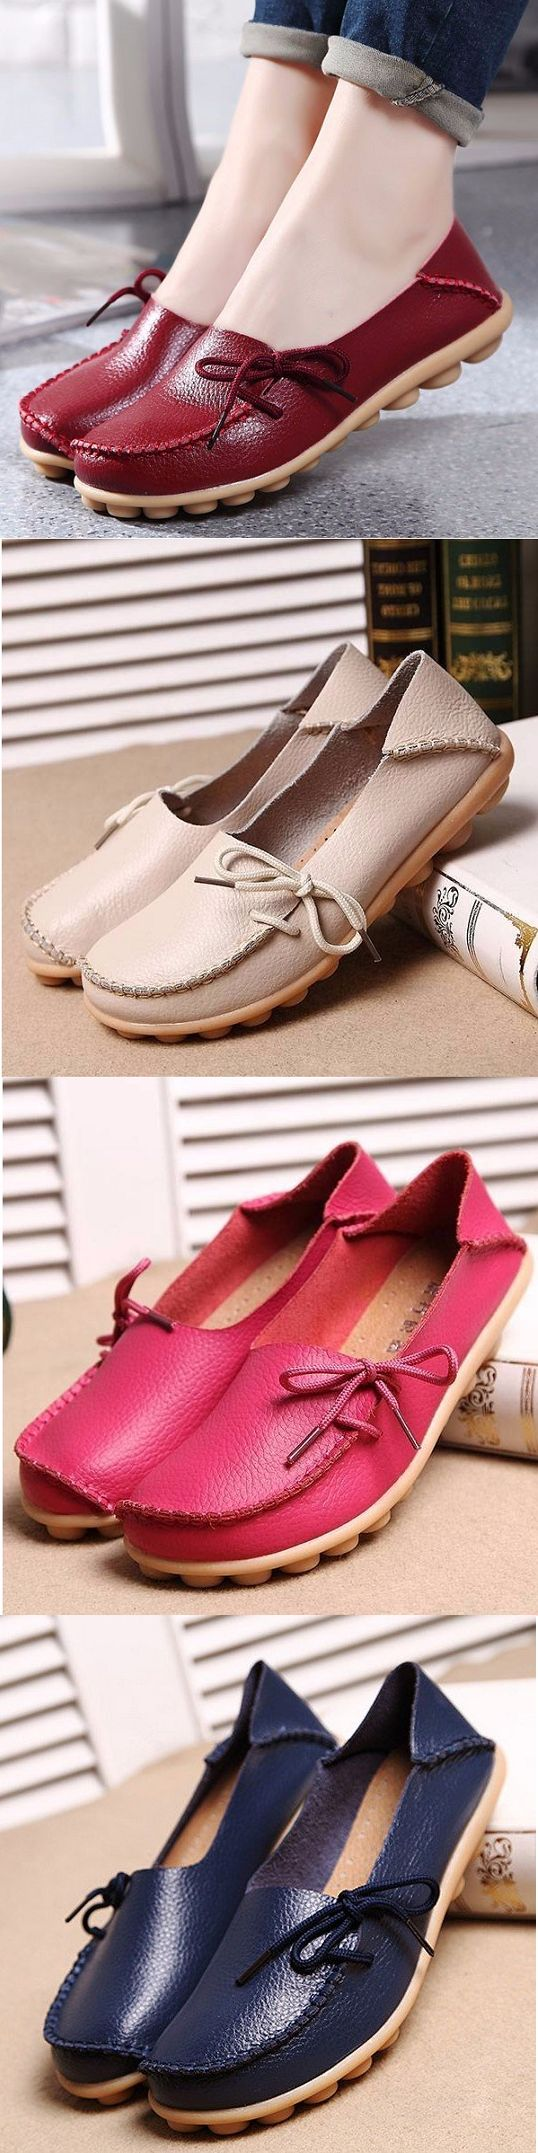 US$14.87 Big Size Pure Color Slip On Lace Up Soft Sole Comfortable Flat Loafers